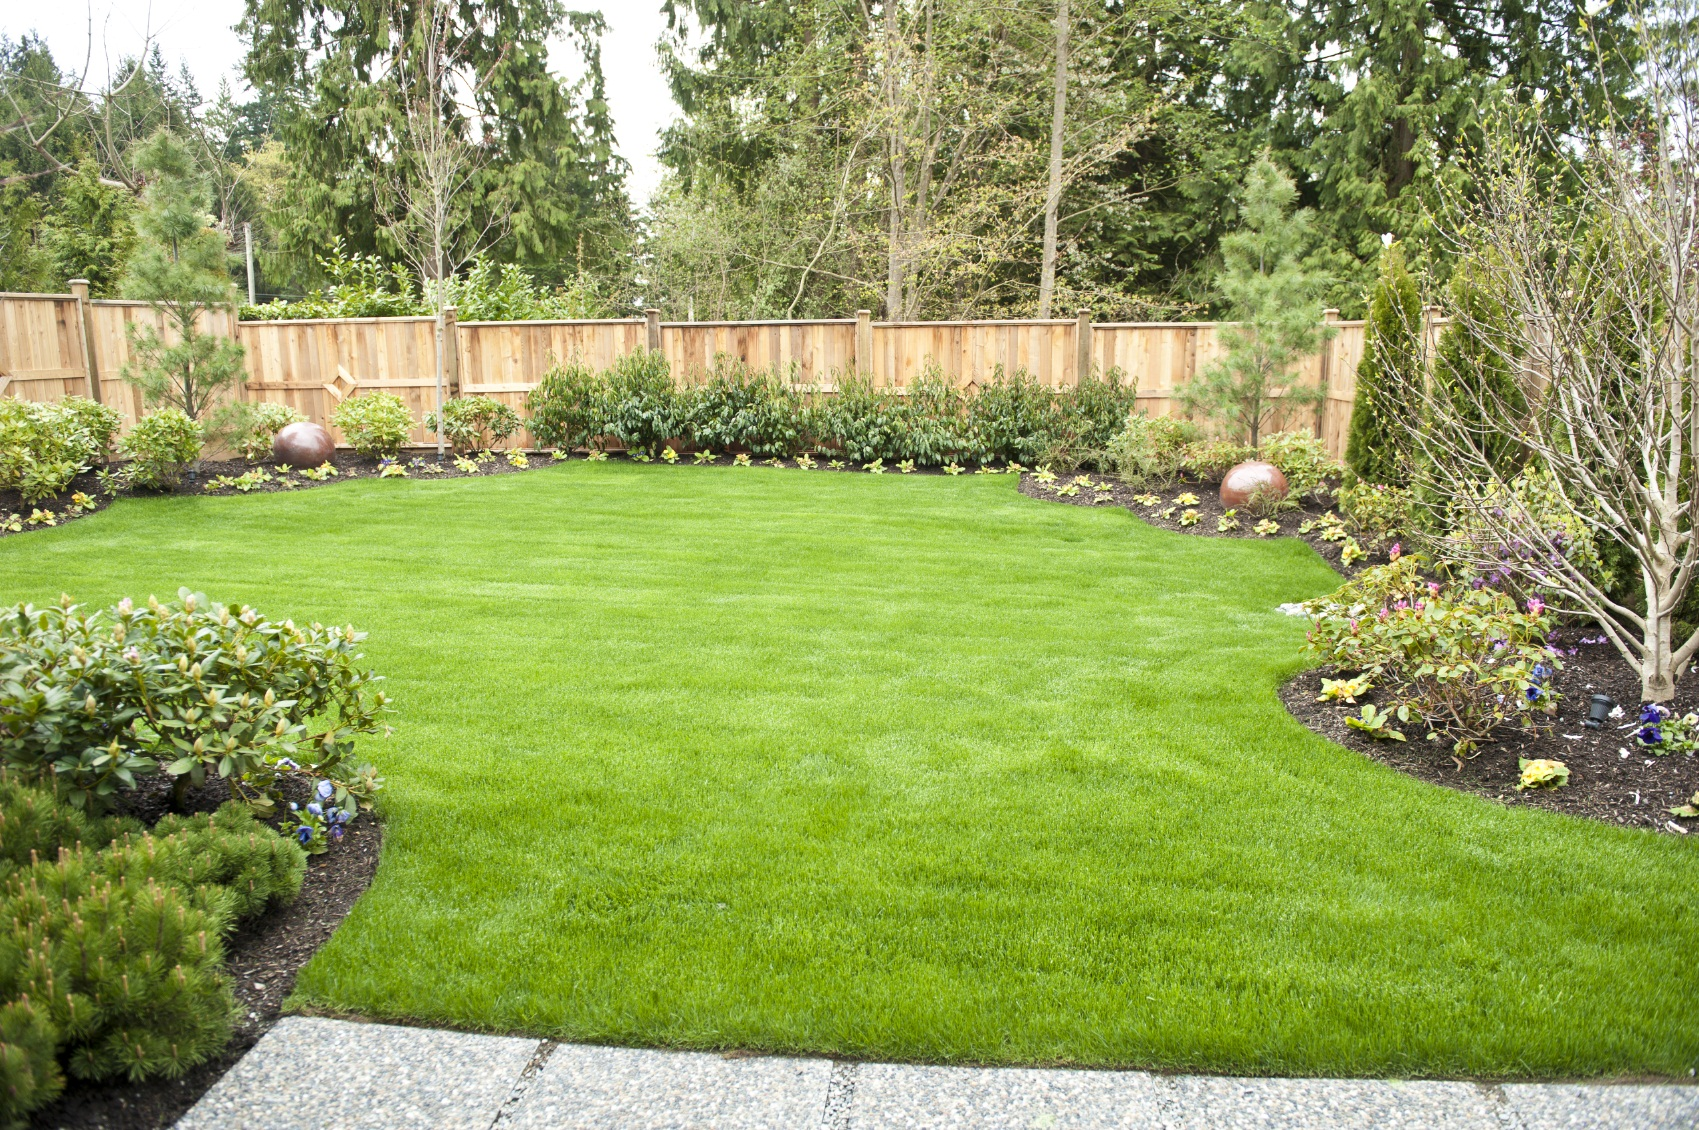 Garden in my backyard wordreference forums for Lawn landscaping ideas